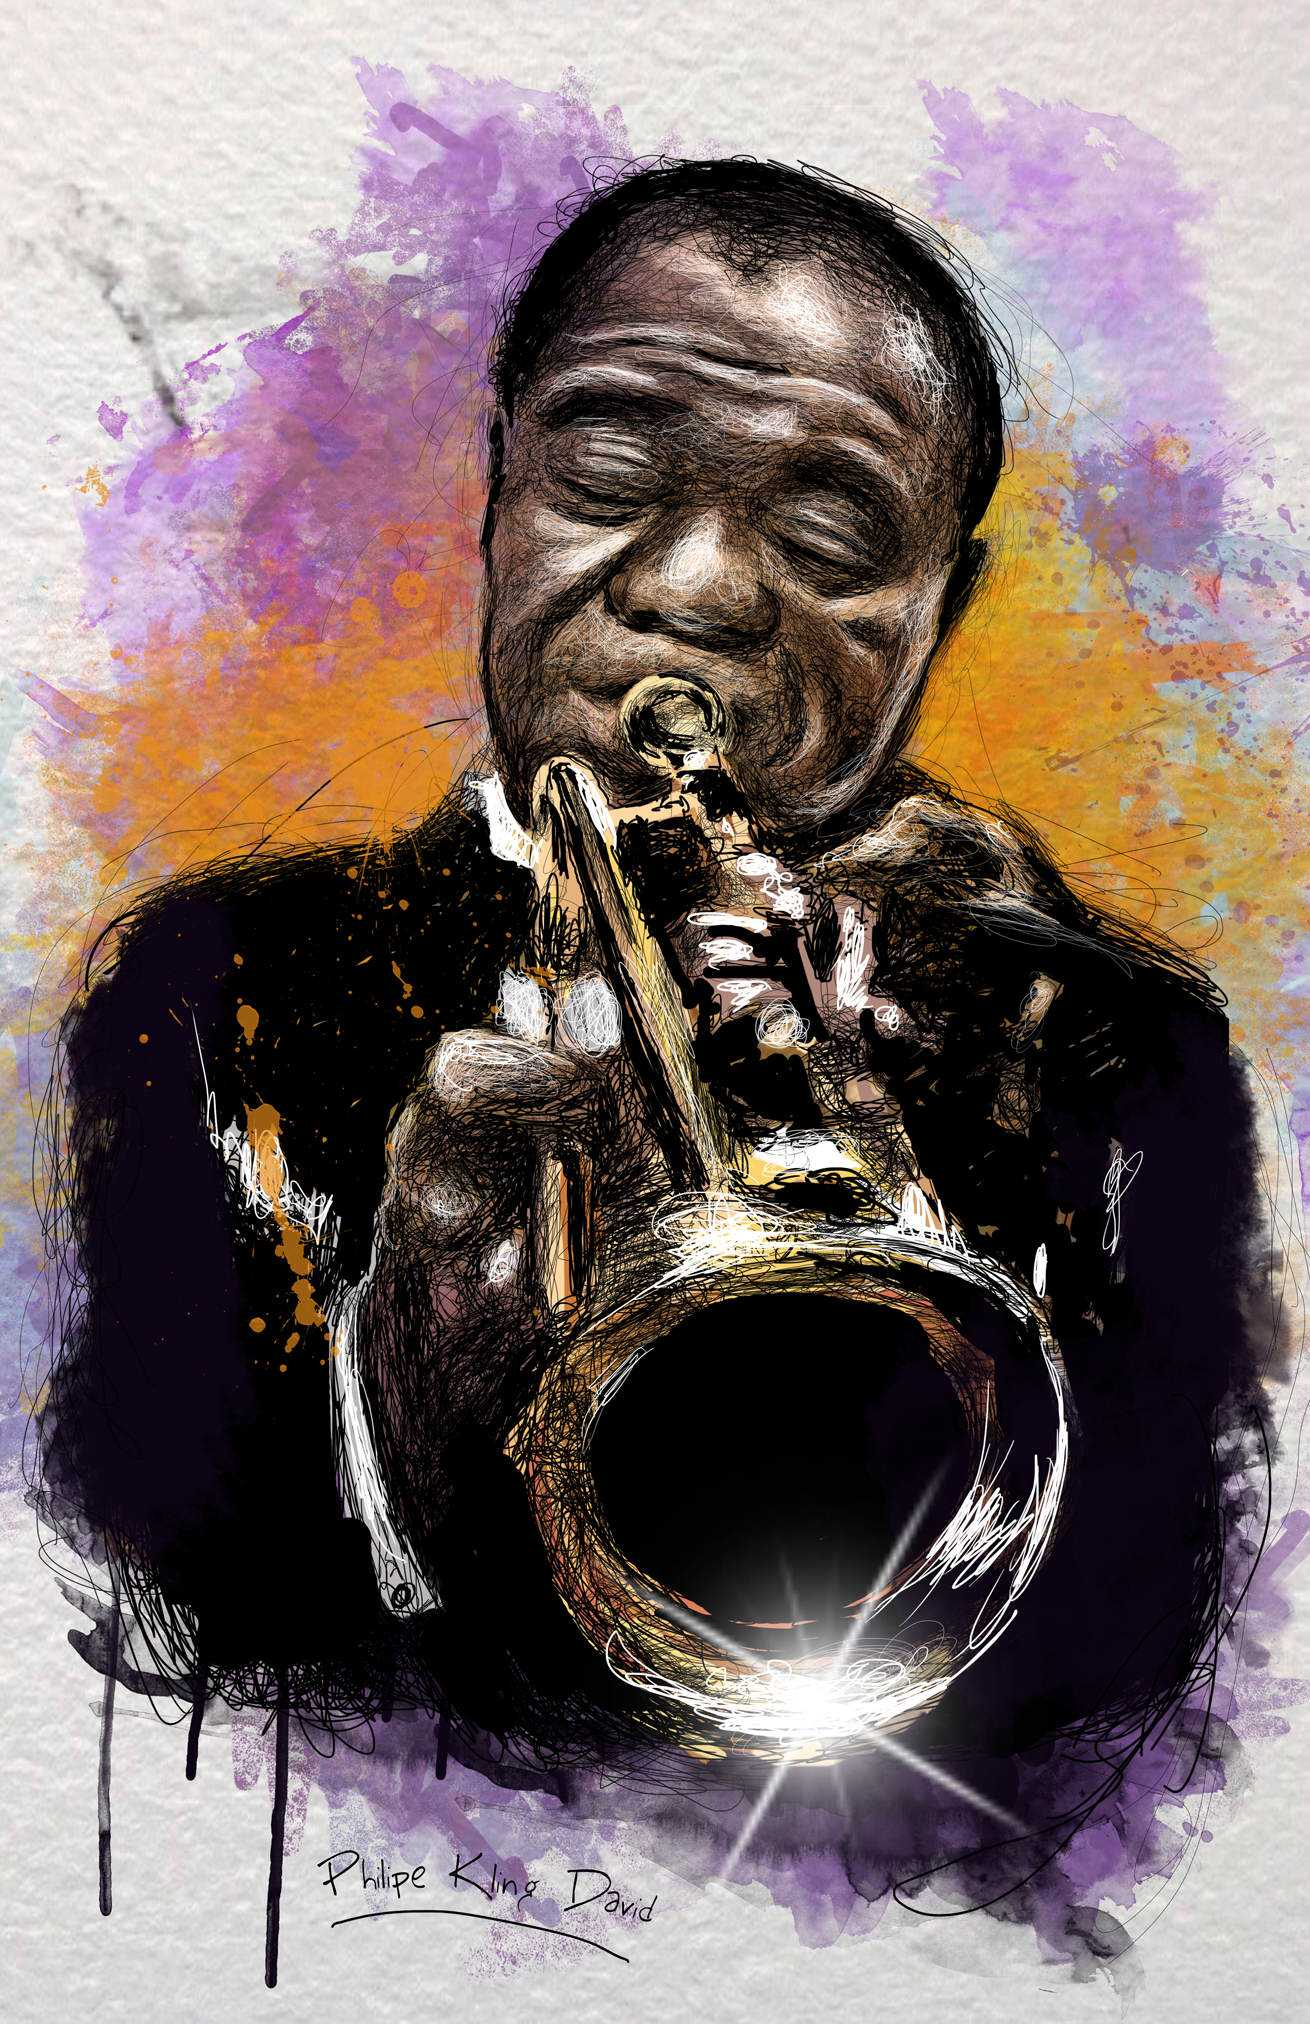 louis armstrong low Louis Armstrong